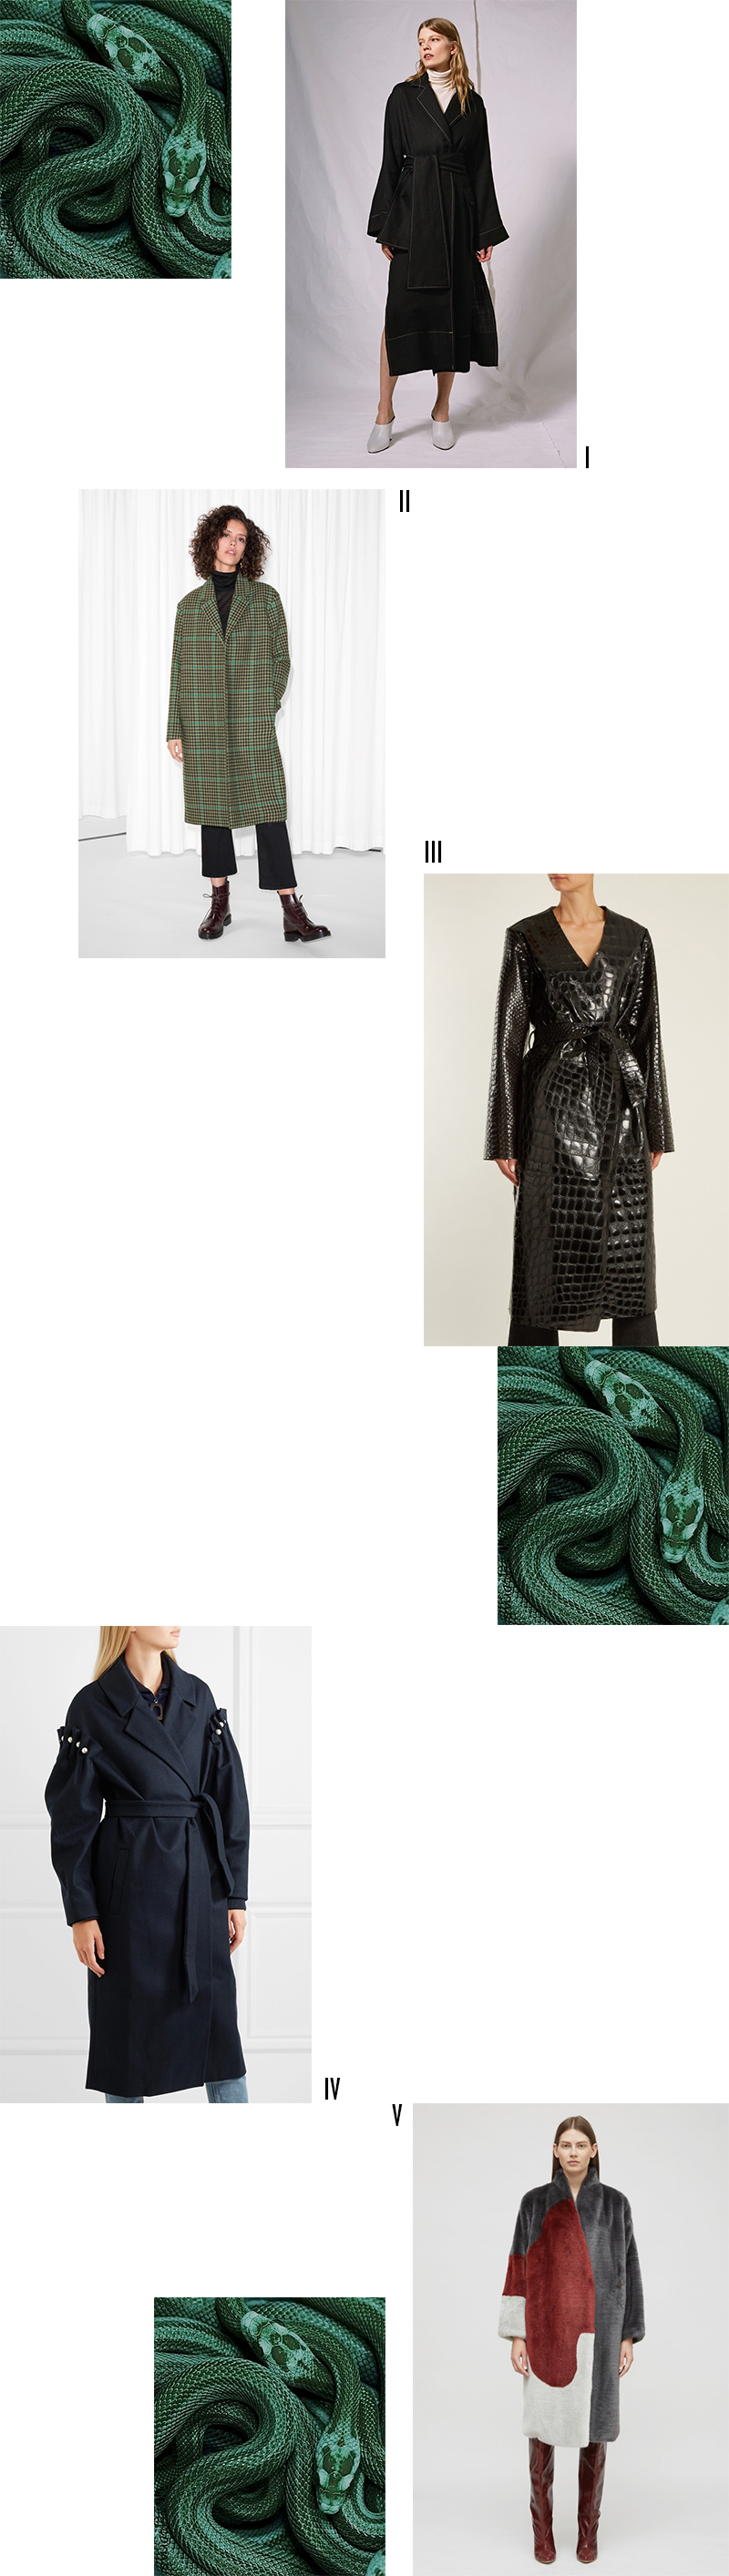 ivoblog---andotherstories-topshop-defect-attico-motherofpearl-coats